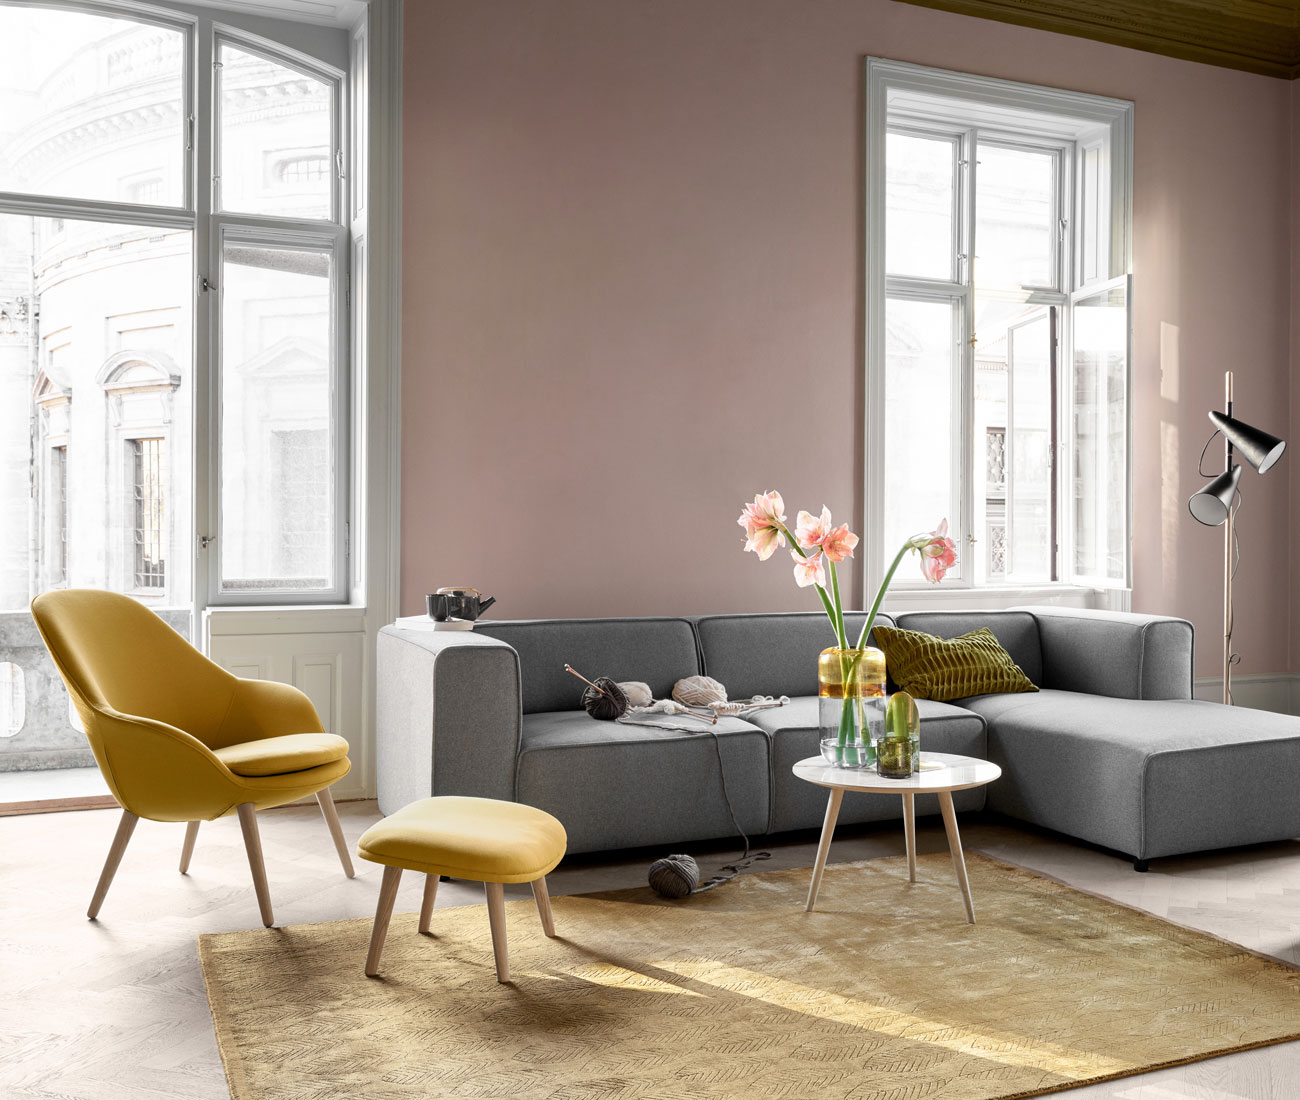 Colour interior styling